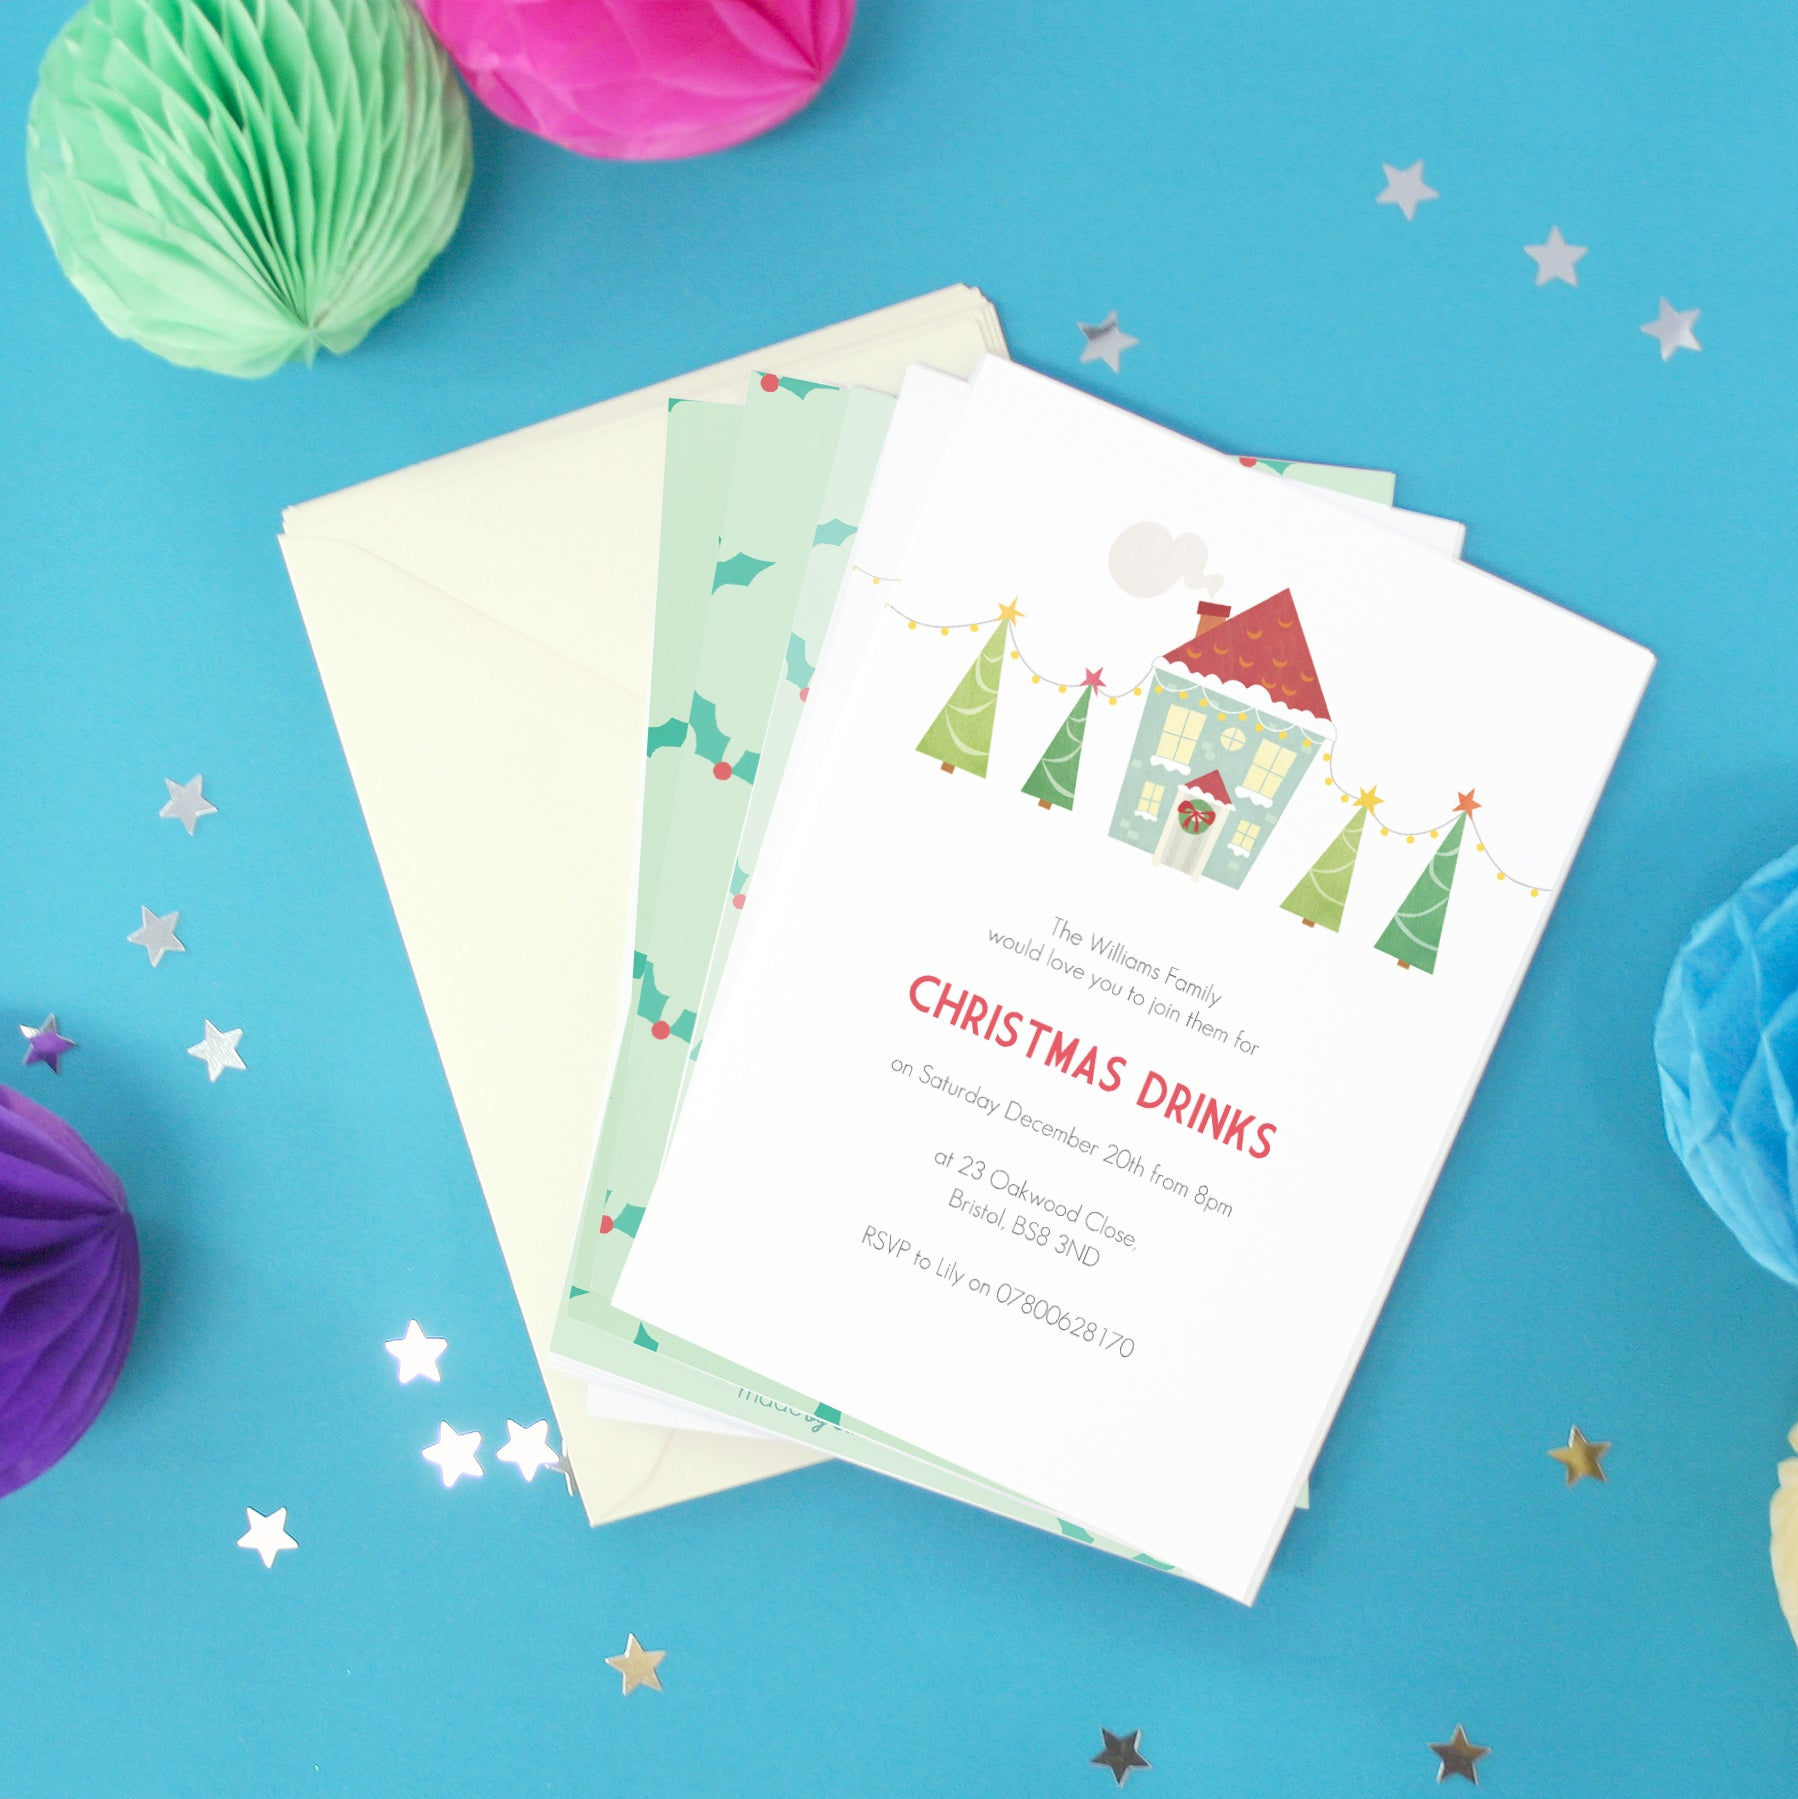 Personalised Christmas Party Invitations With Envelopes Madebyellis